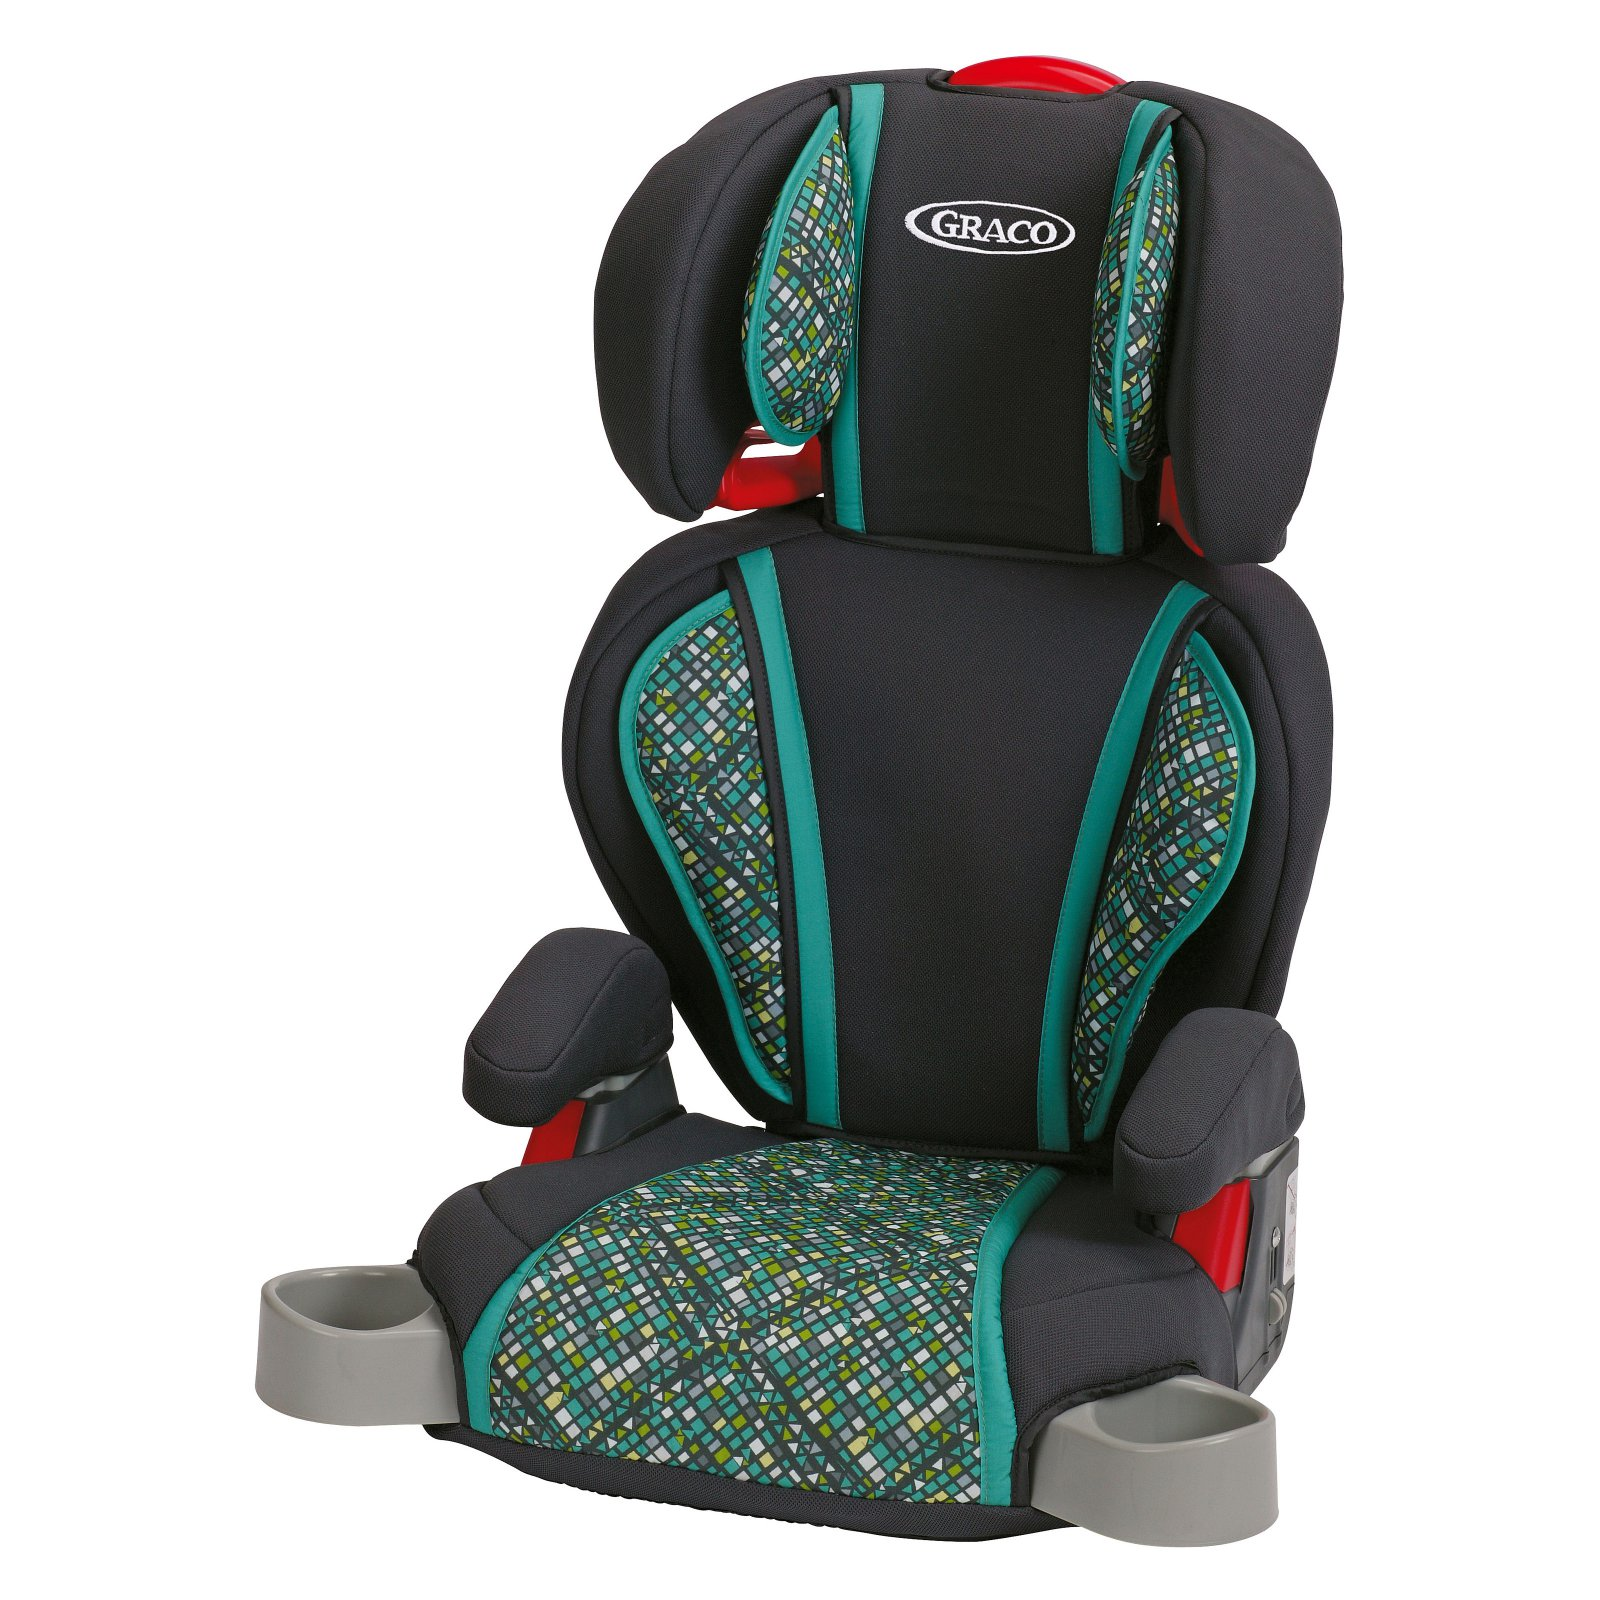 Graco Highback Turbo Booster Car Seat - Mosaic